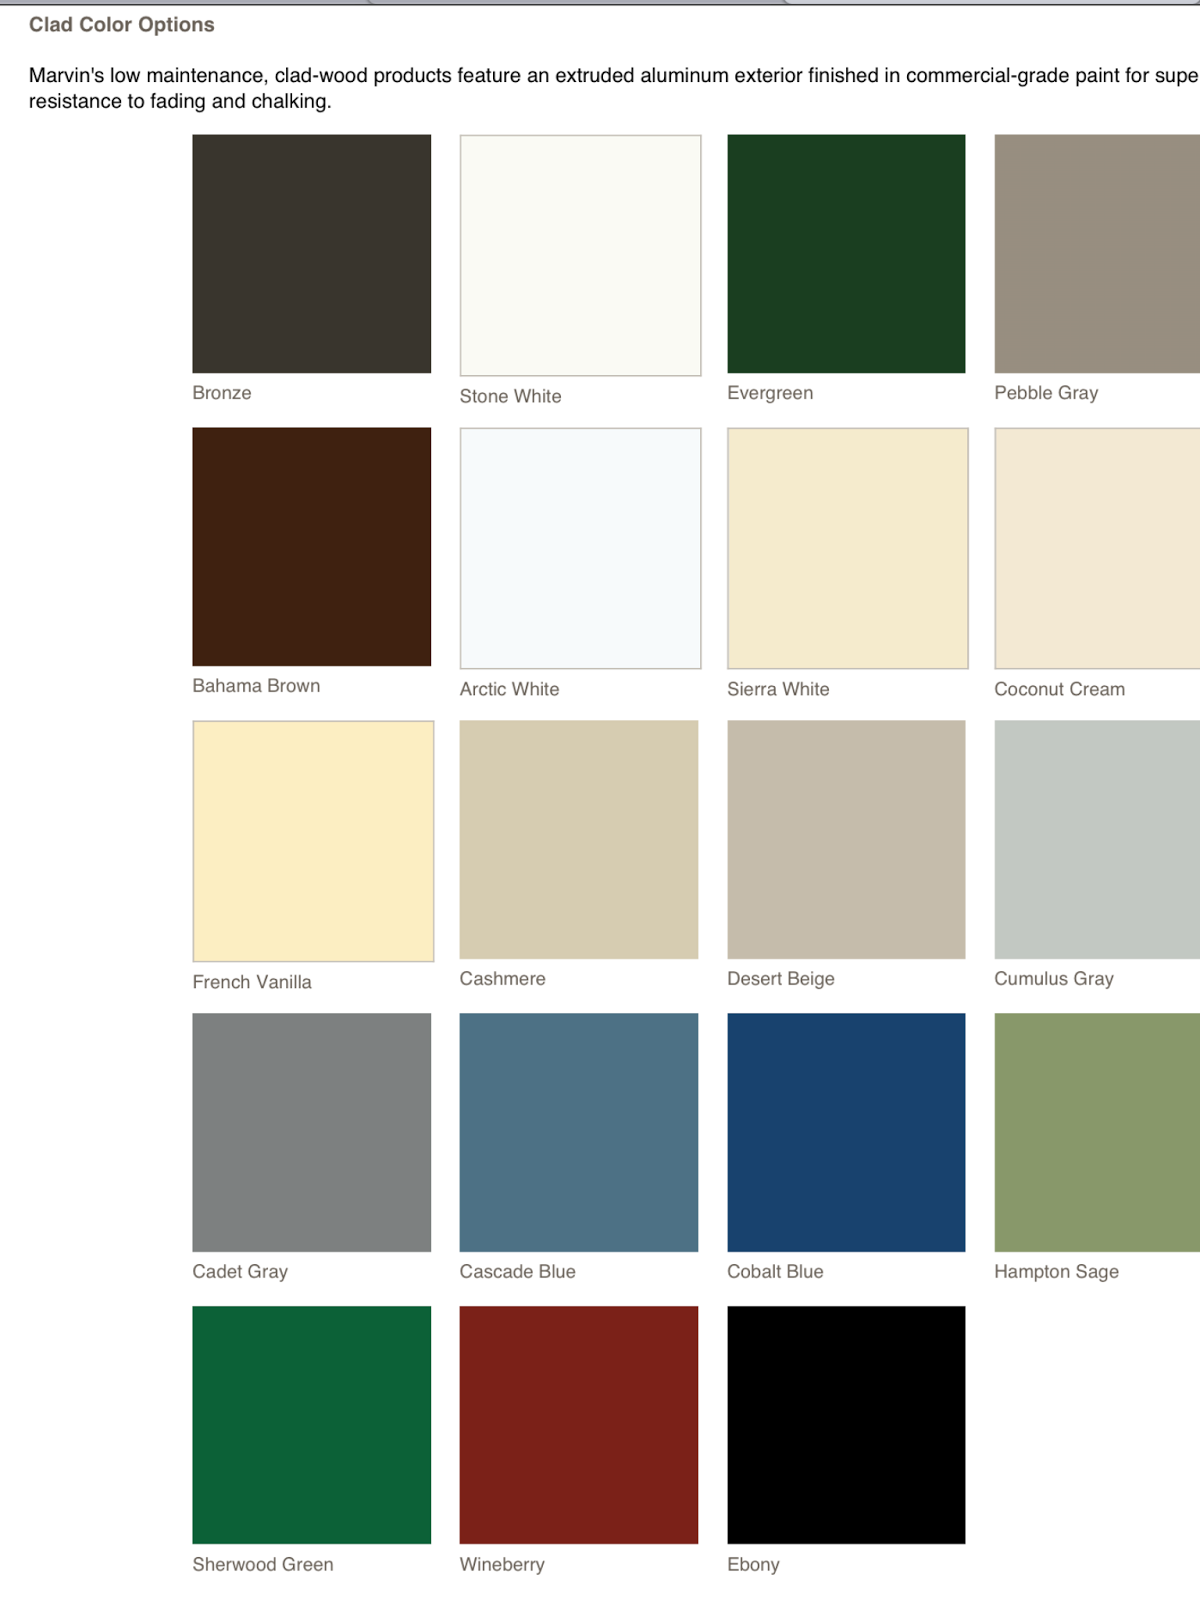 Here Are The Exterior Trim Colors Offered By Marvin Windows And I Think They Extensive Do Custom Don T Know How Spendy Those